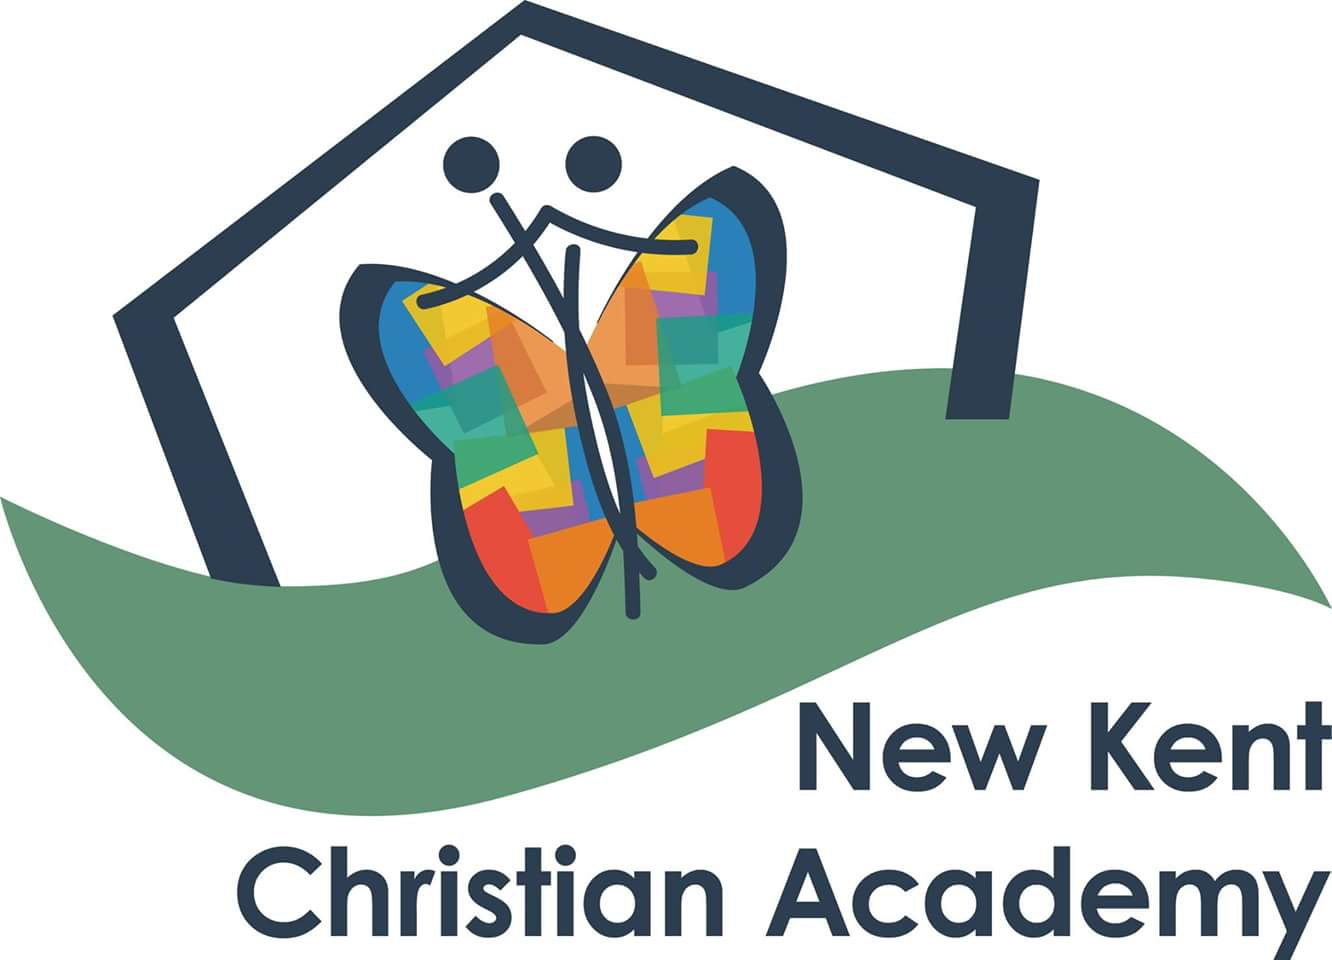 New Kent Christian Academy